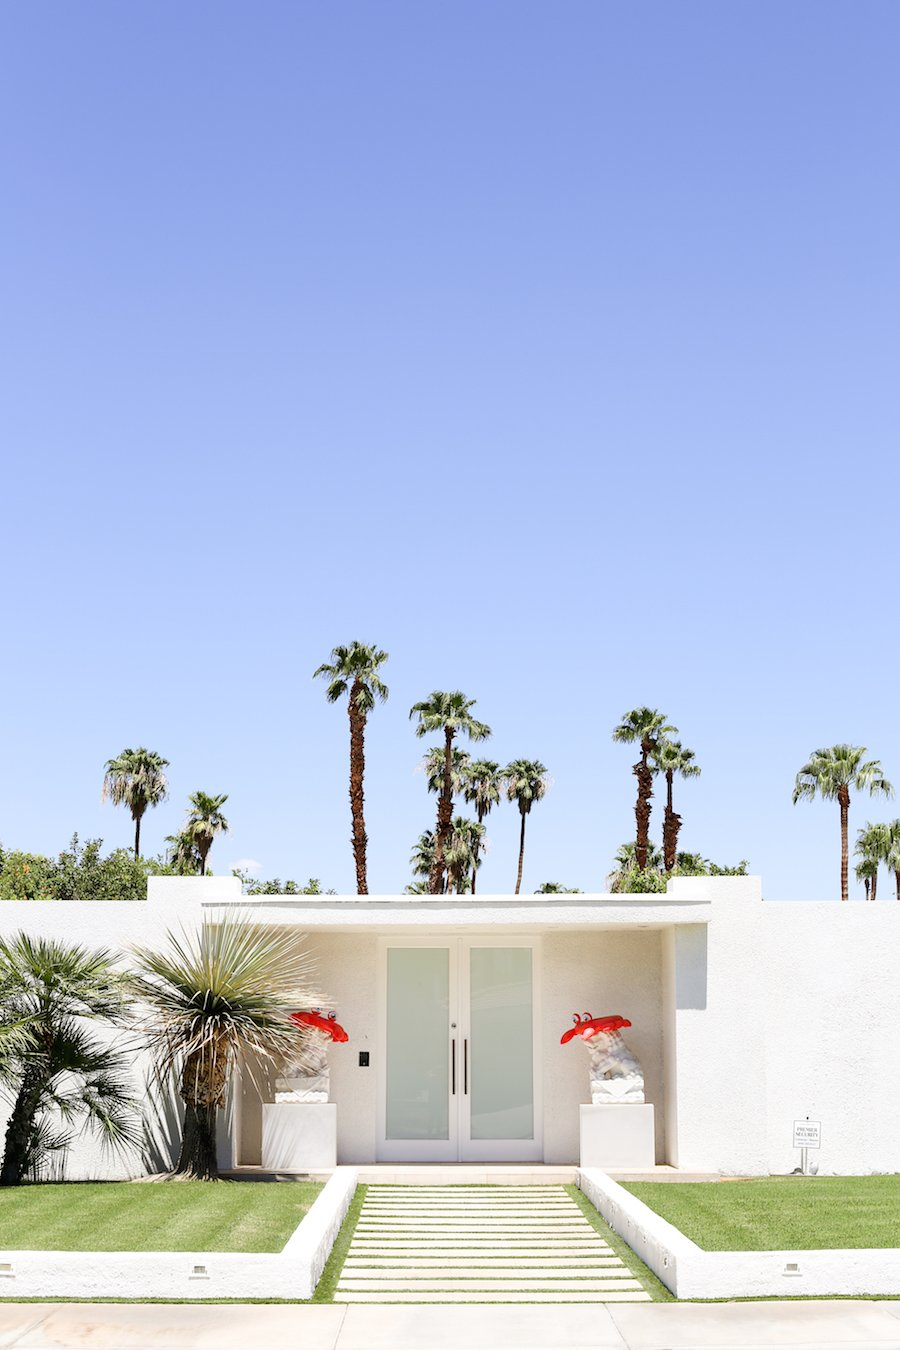 Take a Palm Springs Door Tour to see all the bright & colorful midcentury modern front doors, Instagram Photos, Insta-worthy, Driving Tour, Architecture Tour, Weekend Trip, Palm Springs Guide, Travel Guide, What to do in Palm Springs, Walking Door, Photo Tour, That Pink Door Address, Party Lions, Free Printable Map, Salty Canary